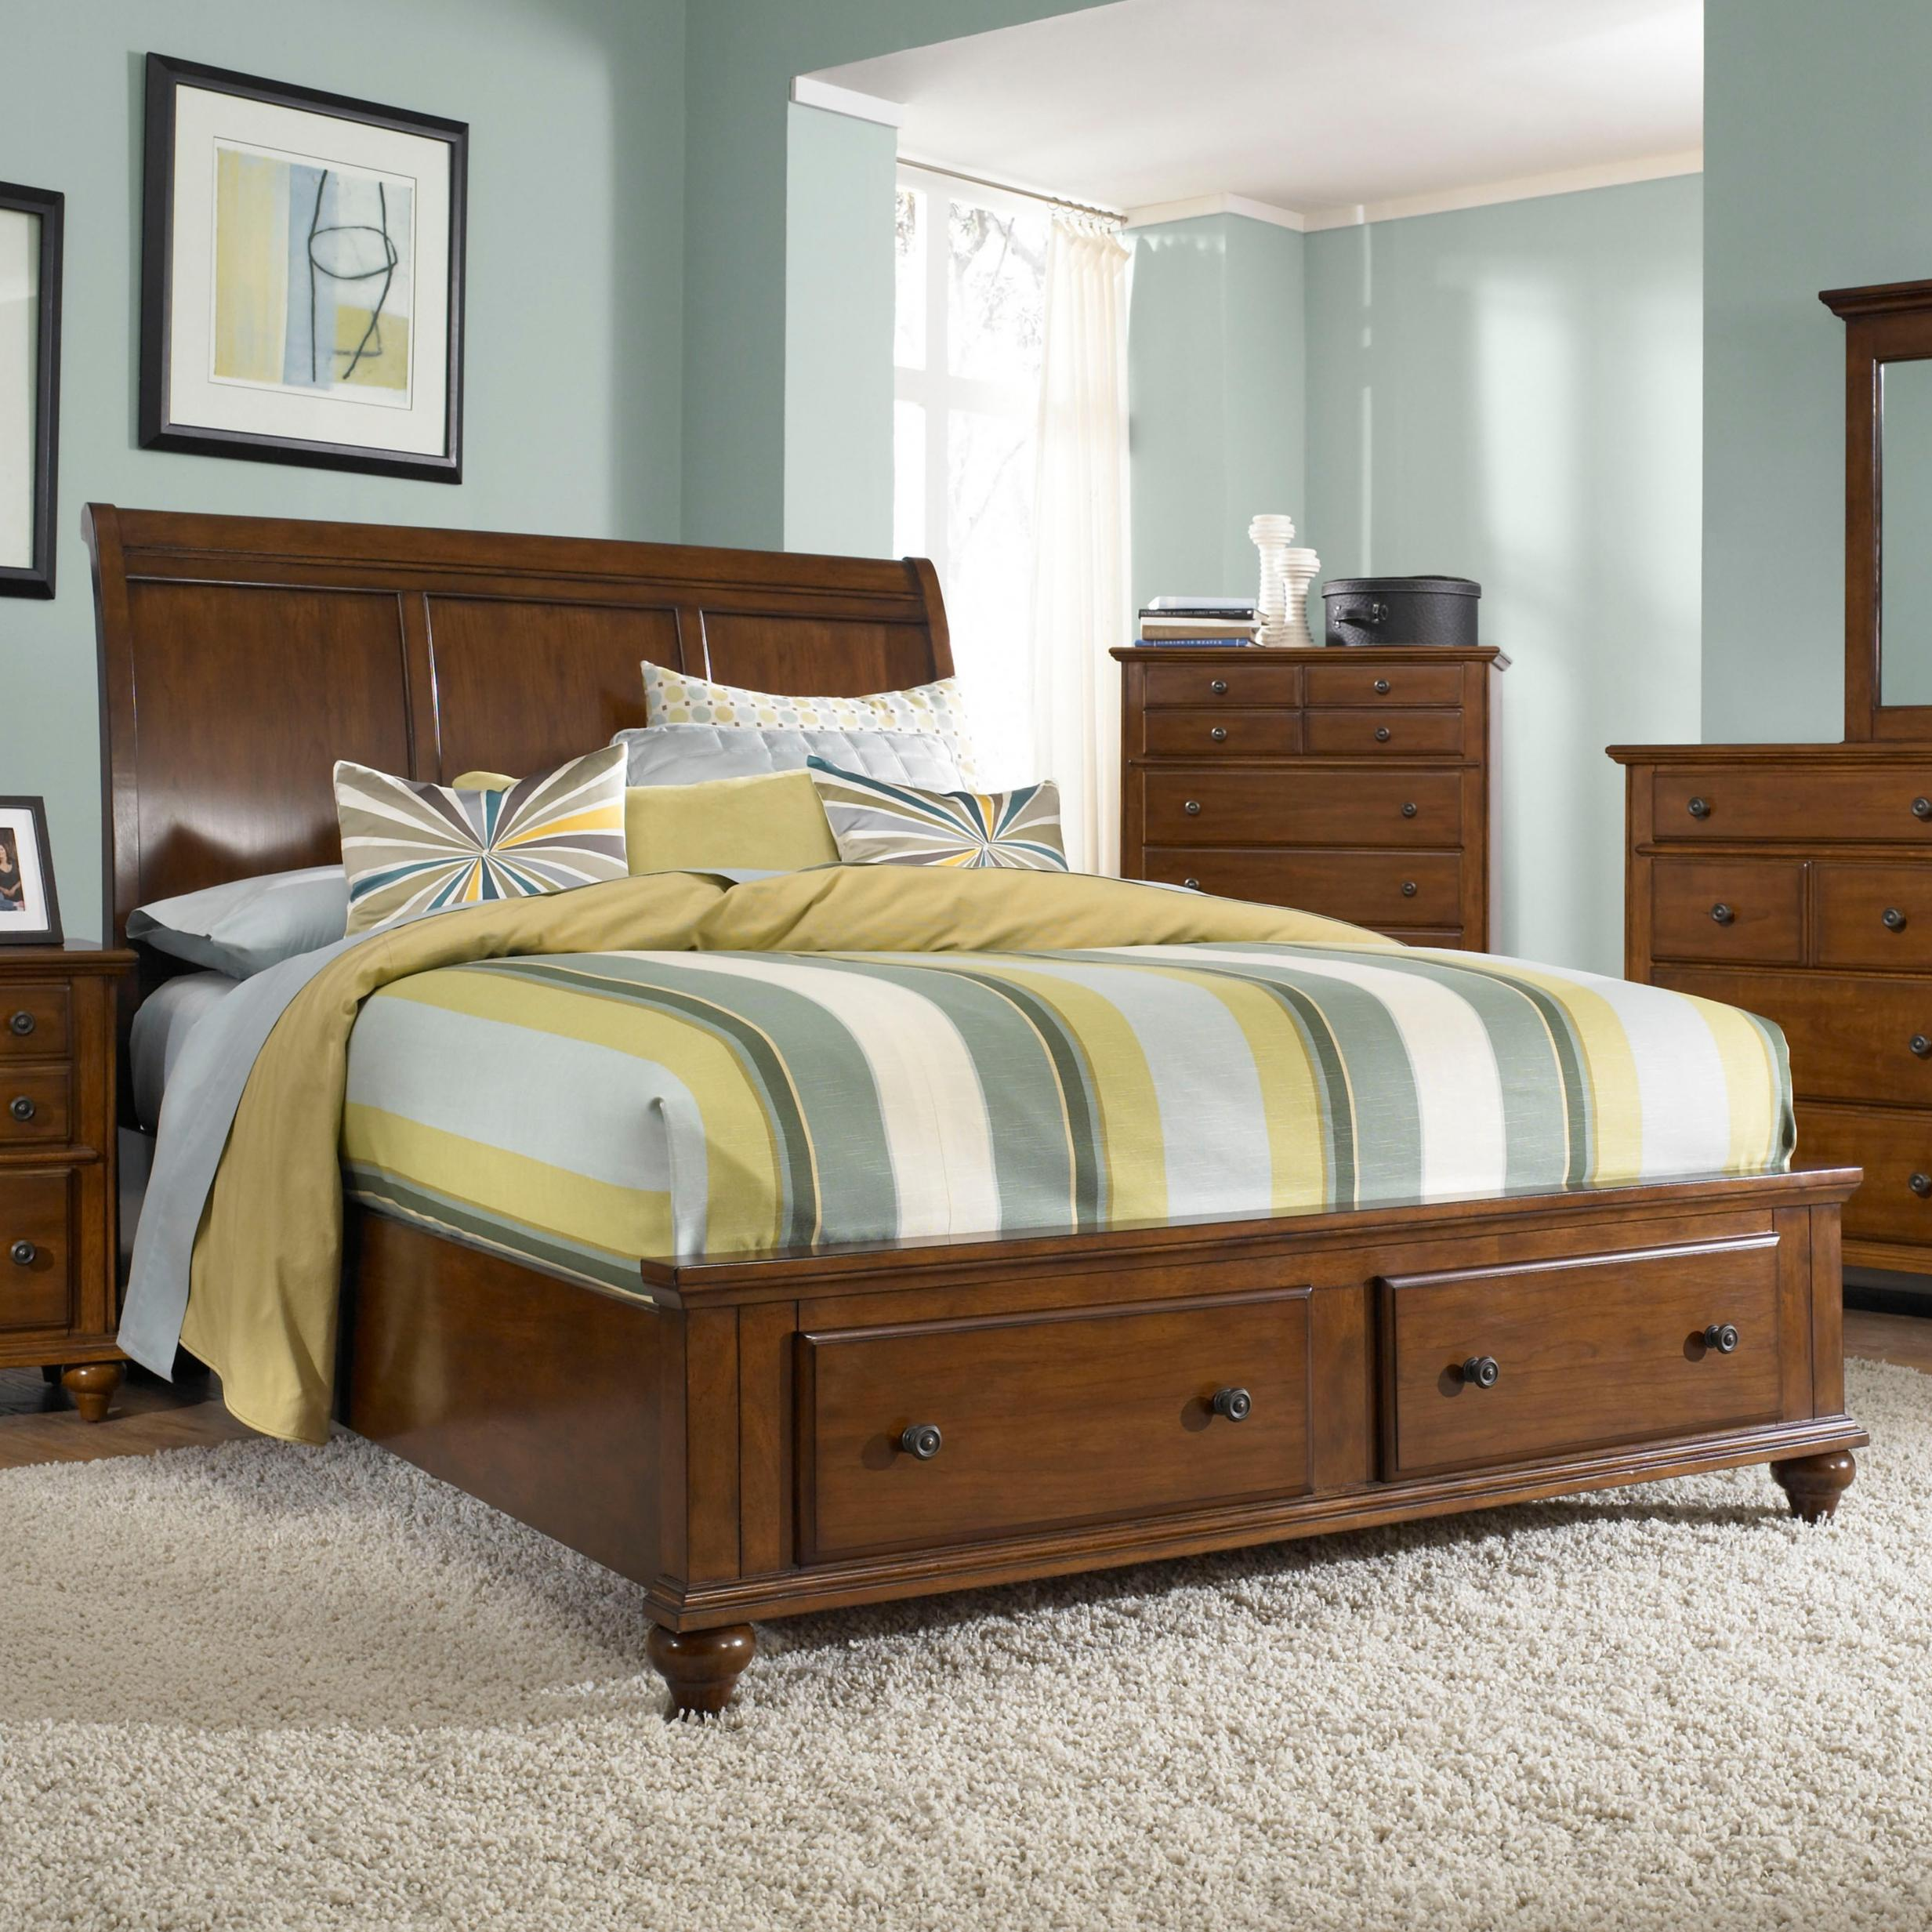 height sleigh bed drawers threshold millennium storage greensburg queen footboard greensburgqueen width trim with item products